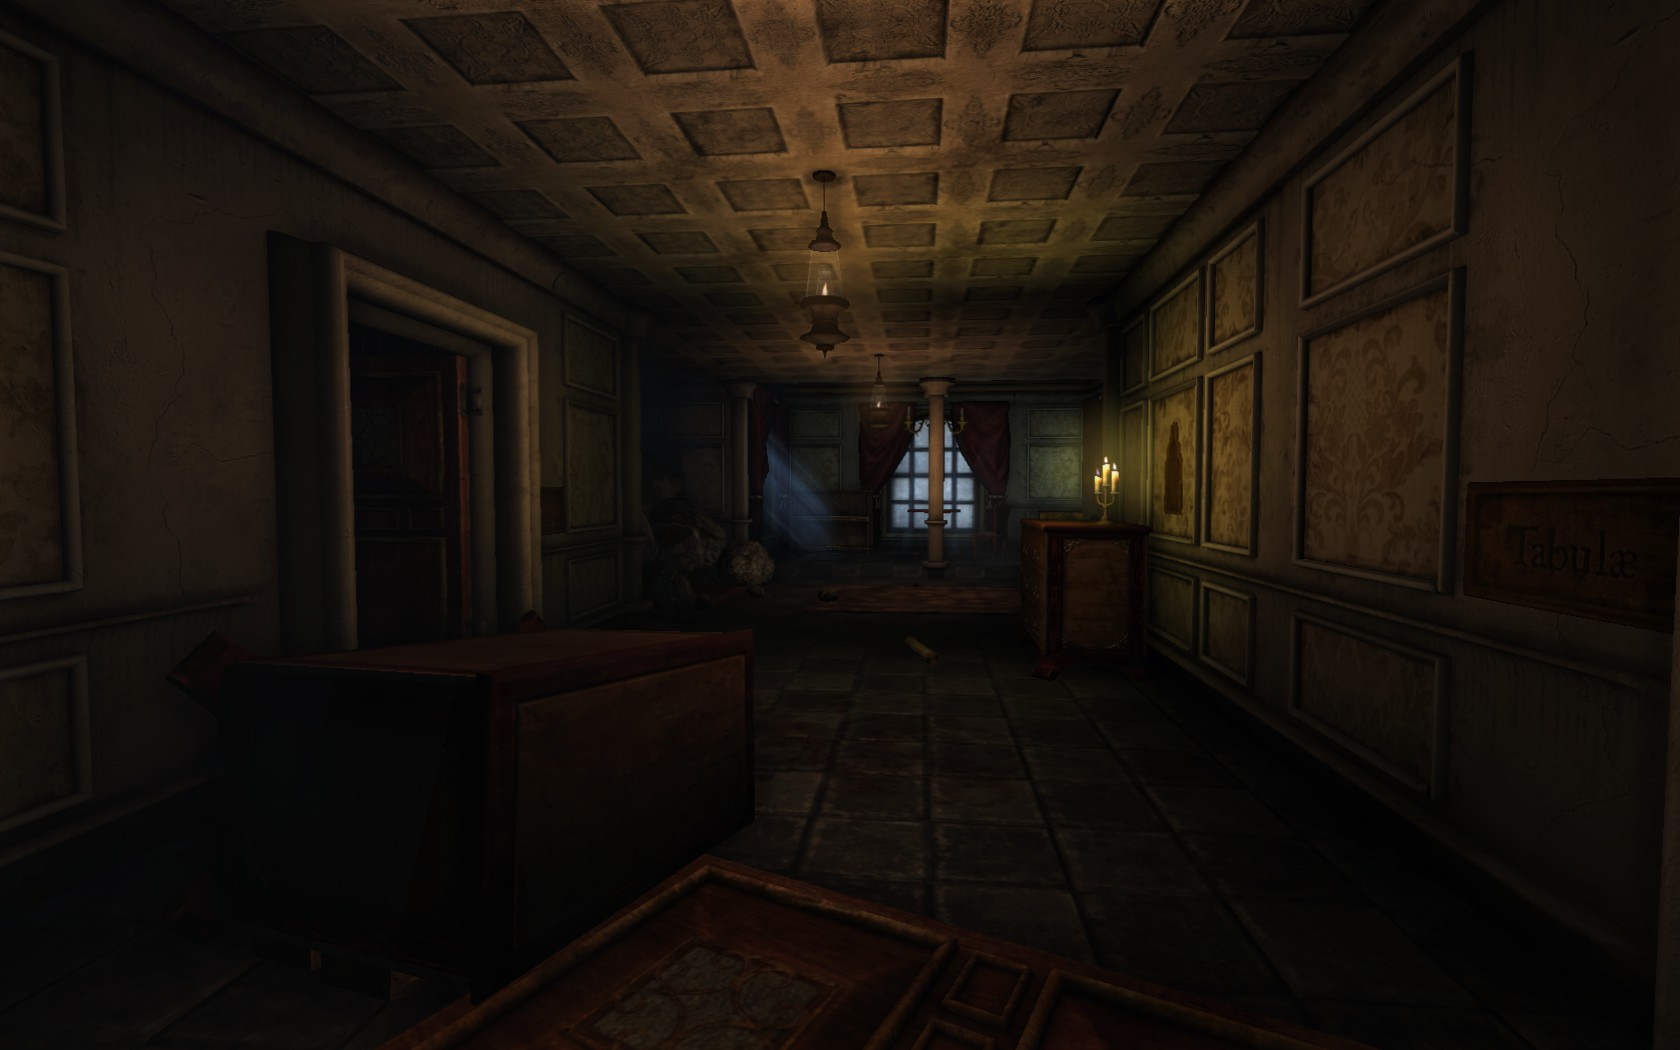 A surprisingly well-lit hallway in Amnesia. Yellow light reflects off the ceiling; a dresser is tipped over on the floor. Rubble can be seen in the background.